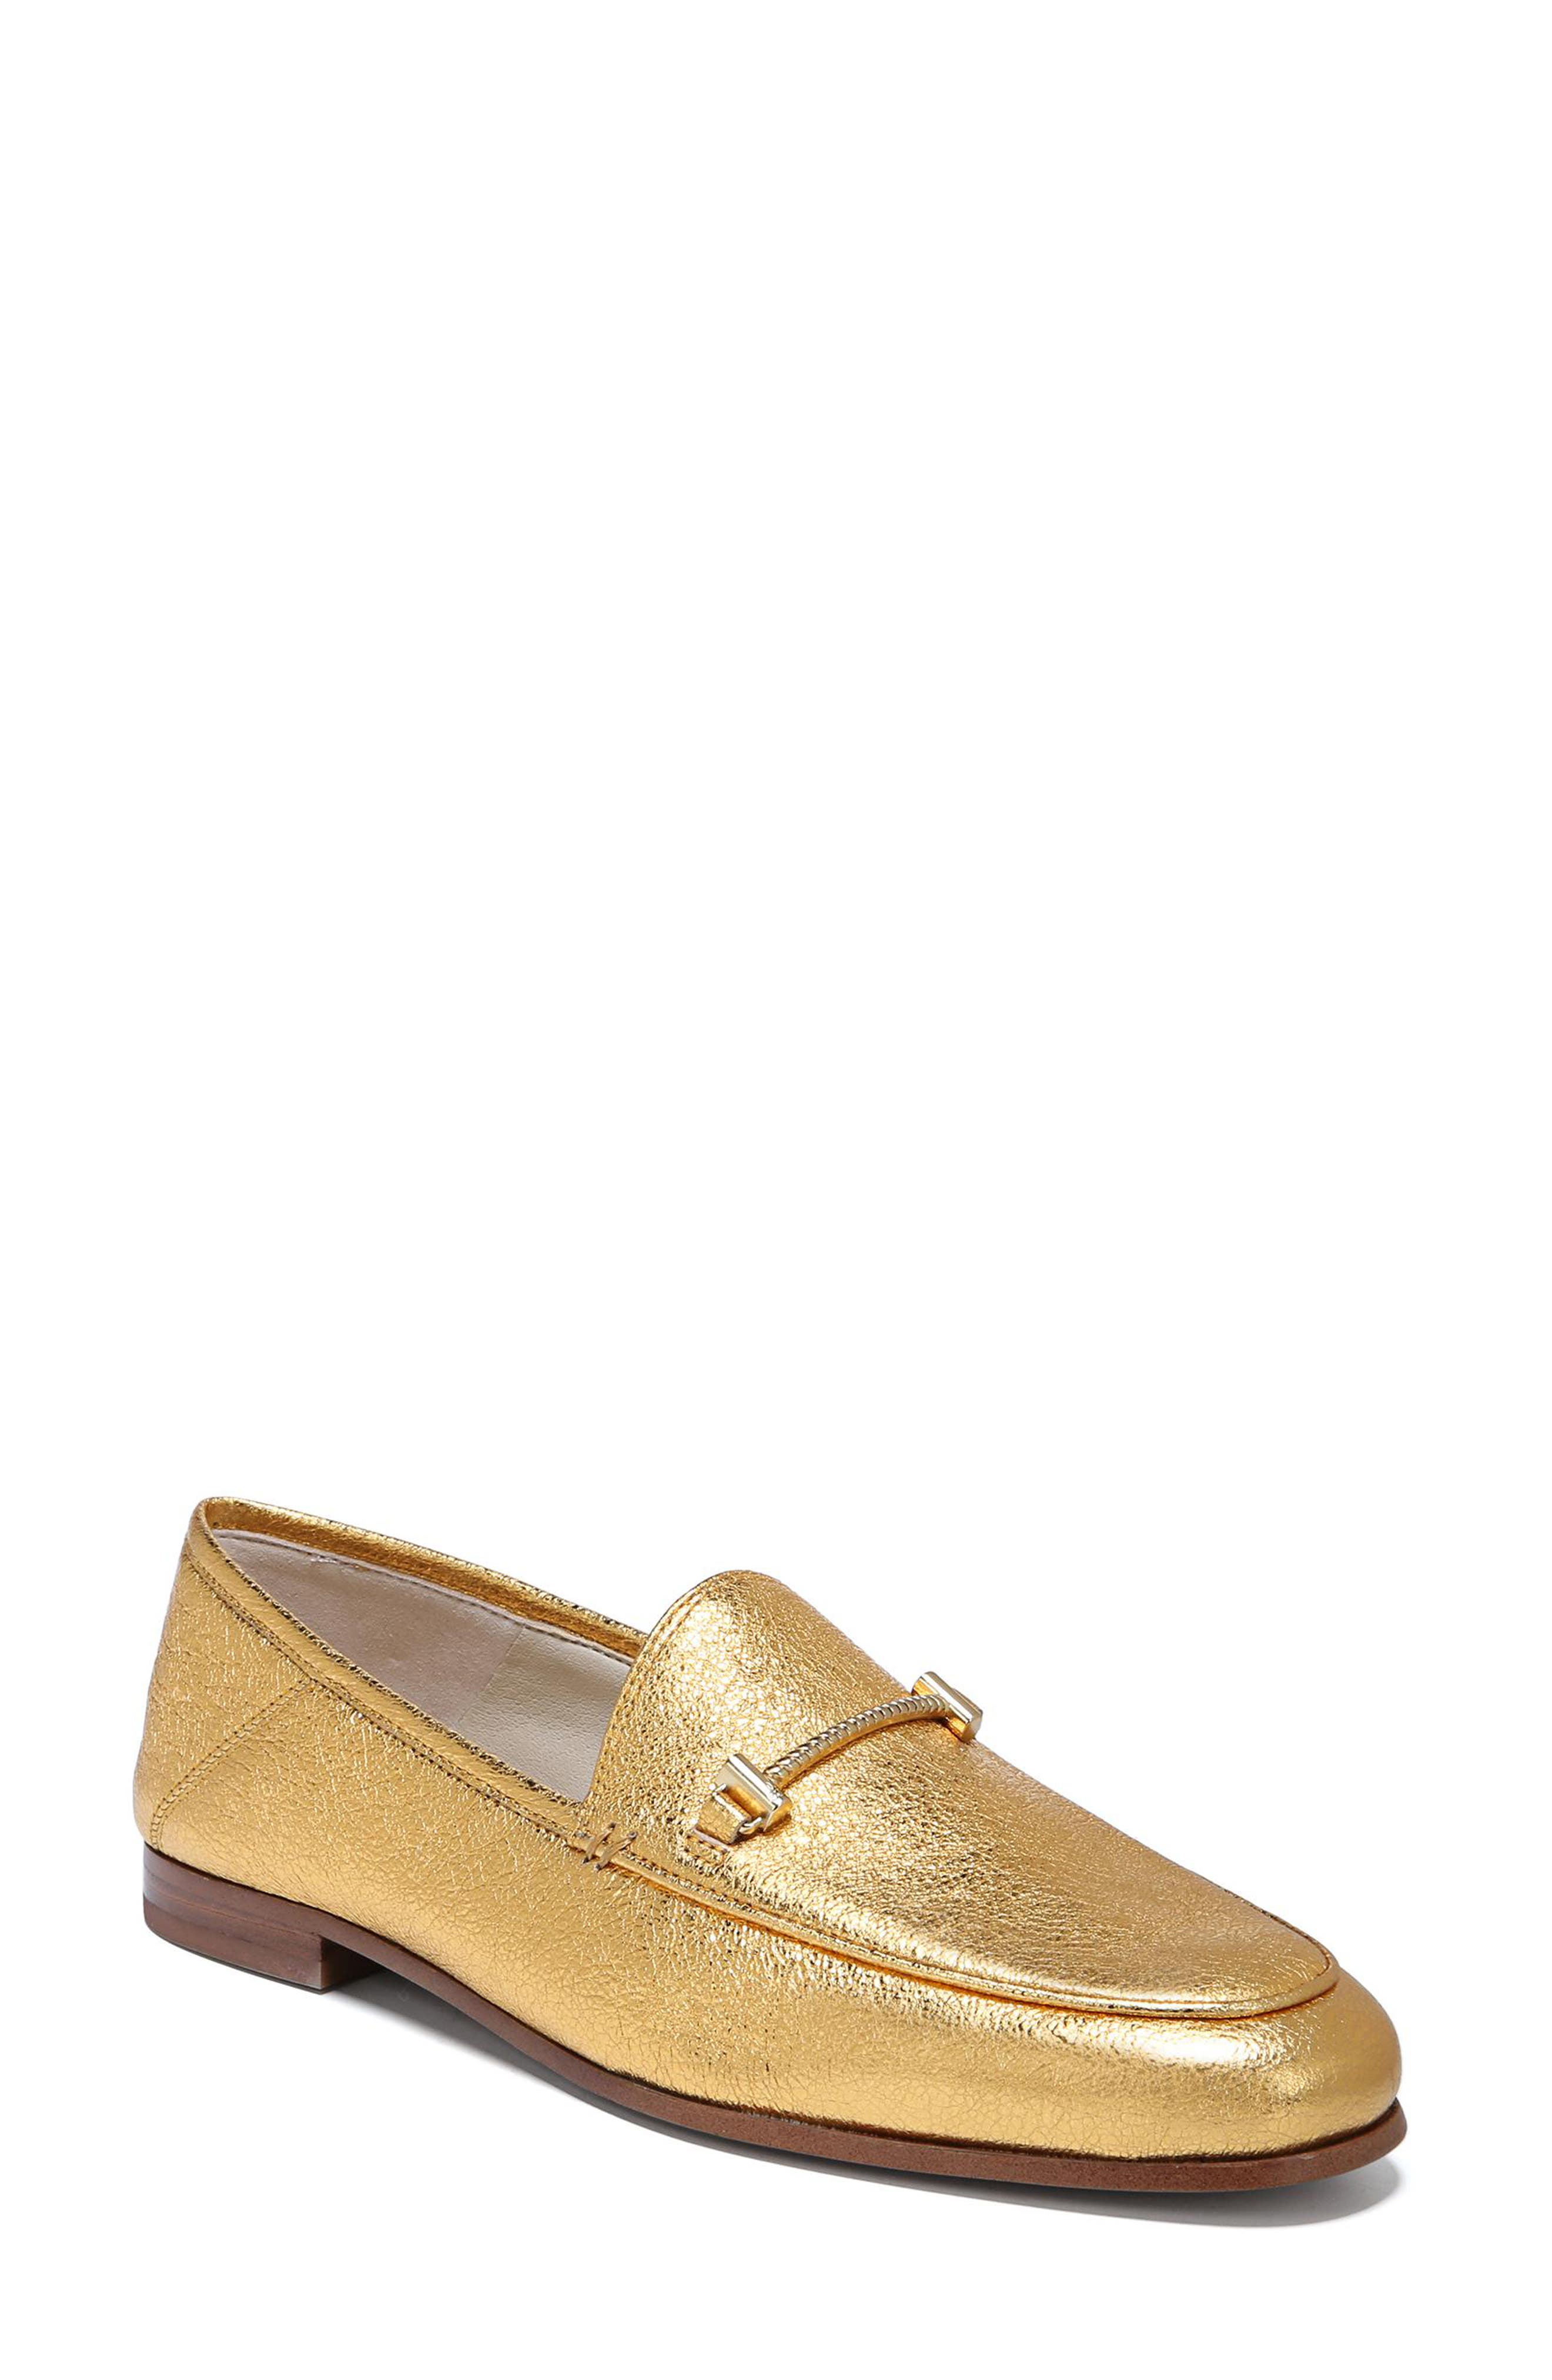 Lior Loafer,                             Main thumbnail 1, color,                             Exotic Gold Leather